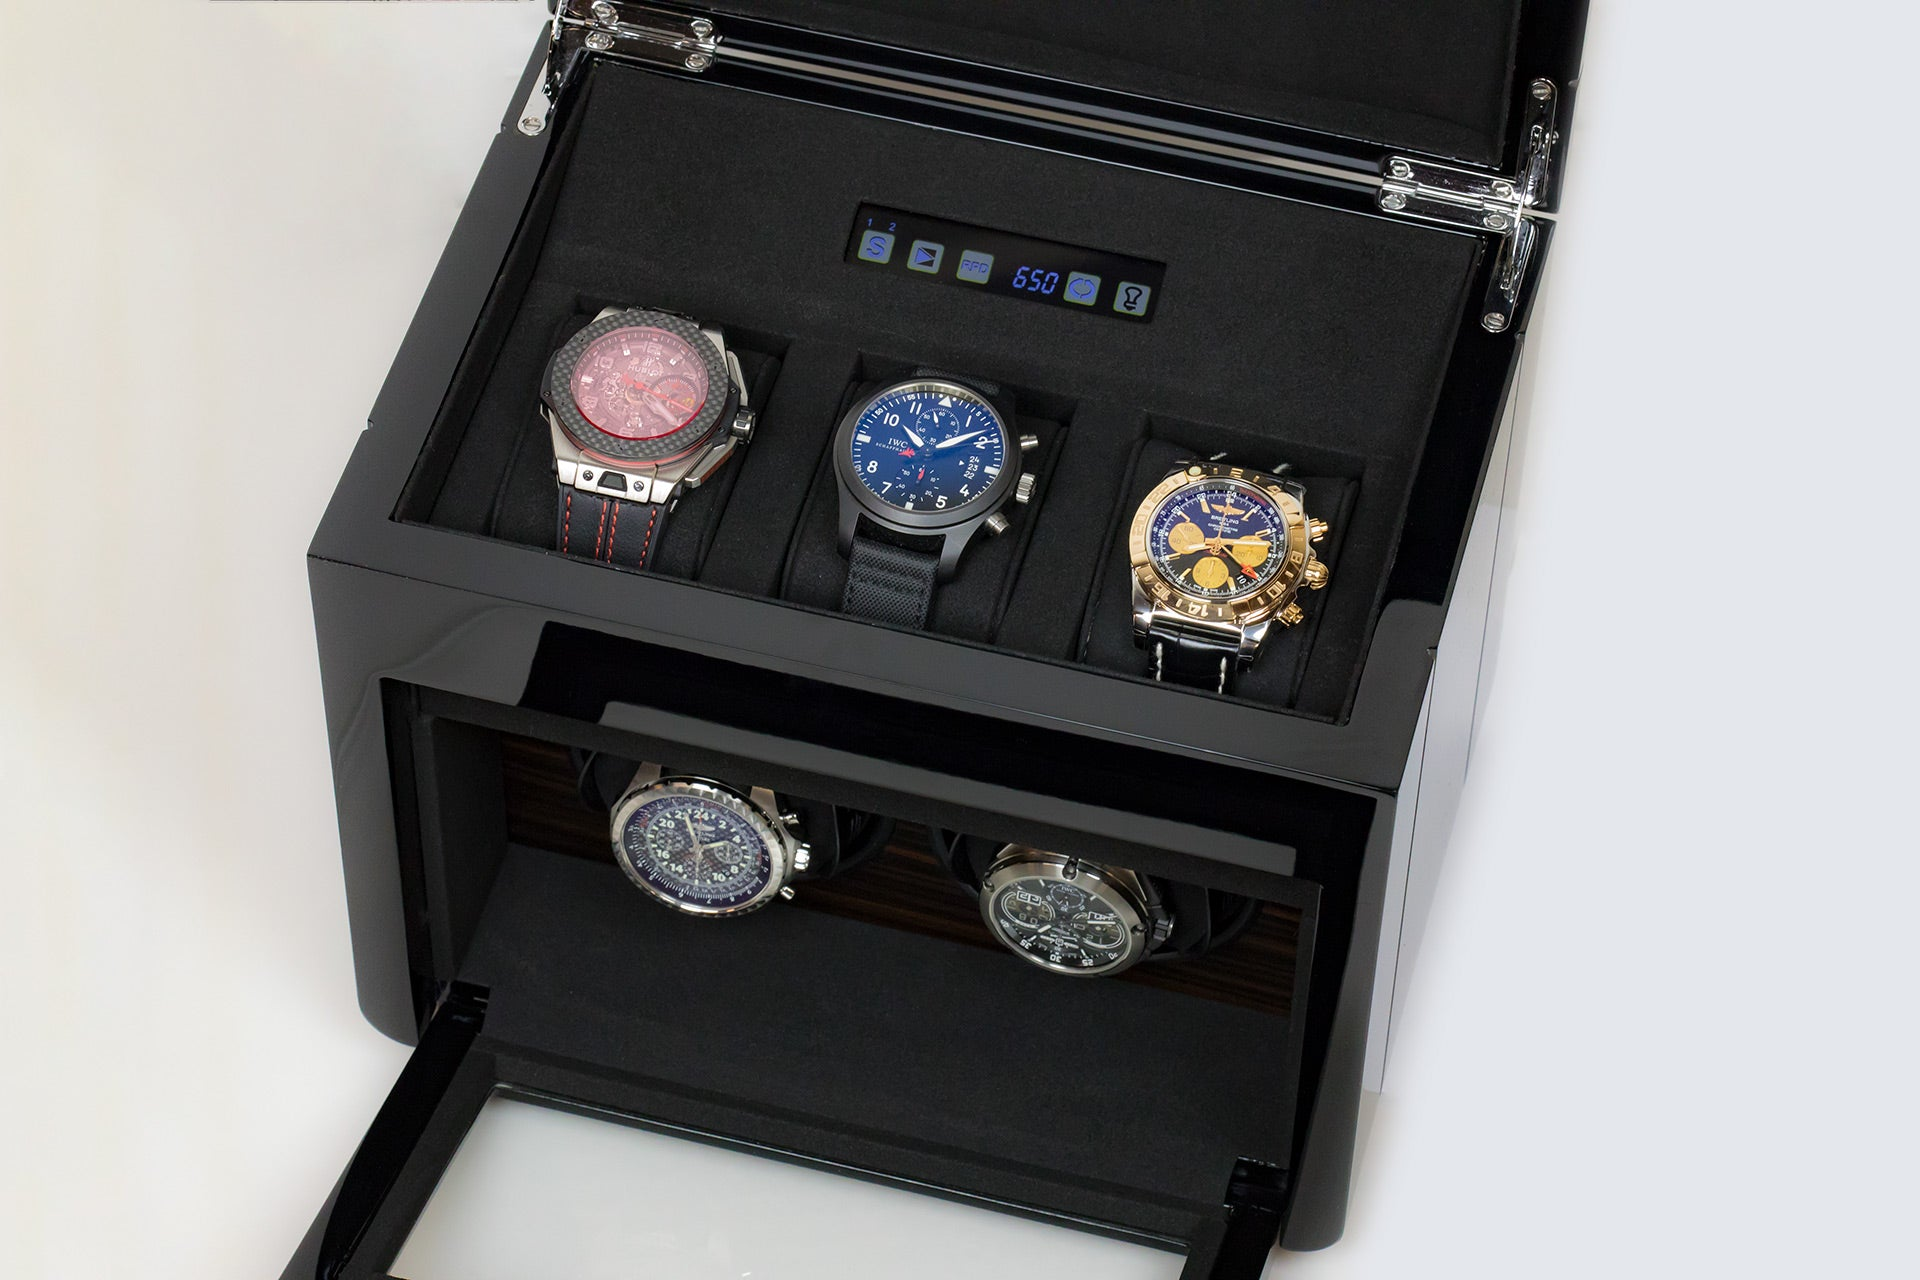 The Luxury Well Touch Screen Control Double Watch Winder with 3-watch Storage